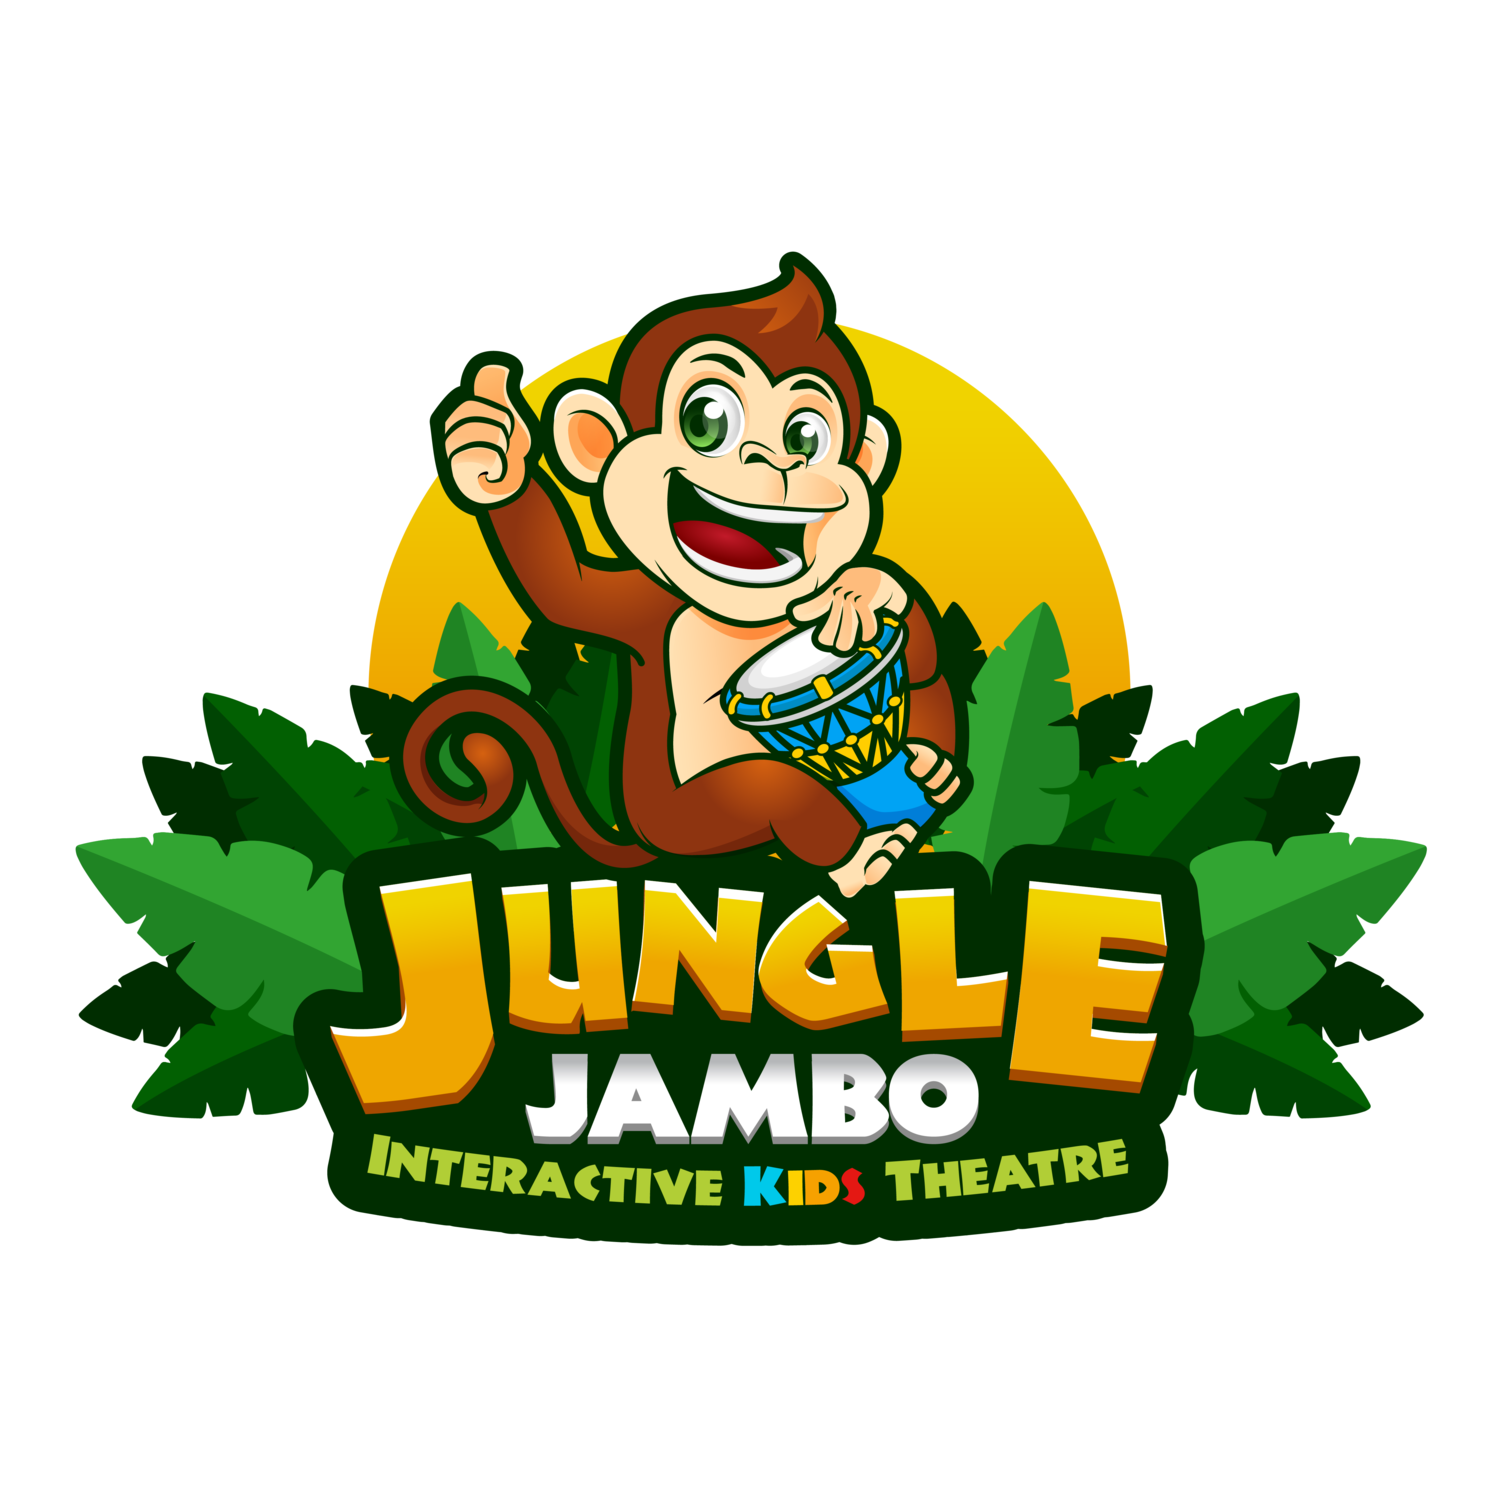 Jungle Jambo